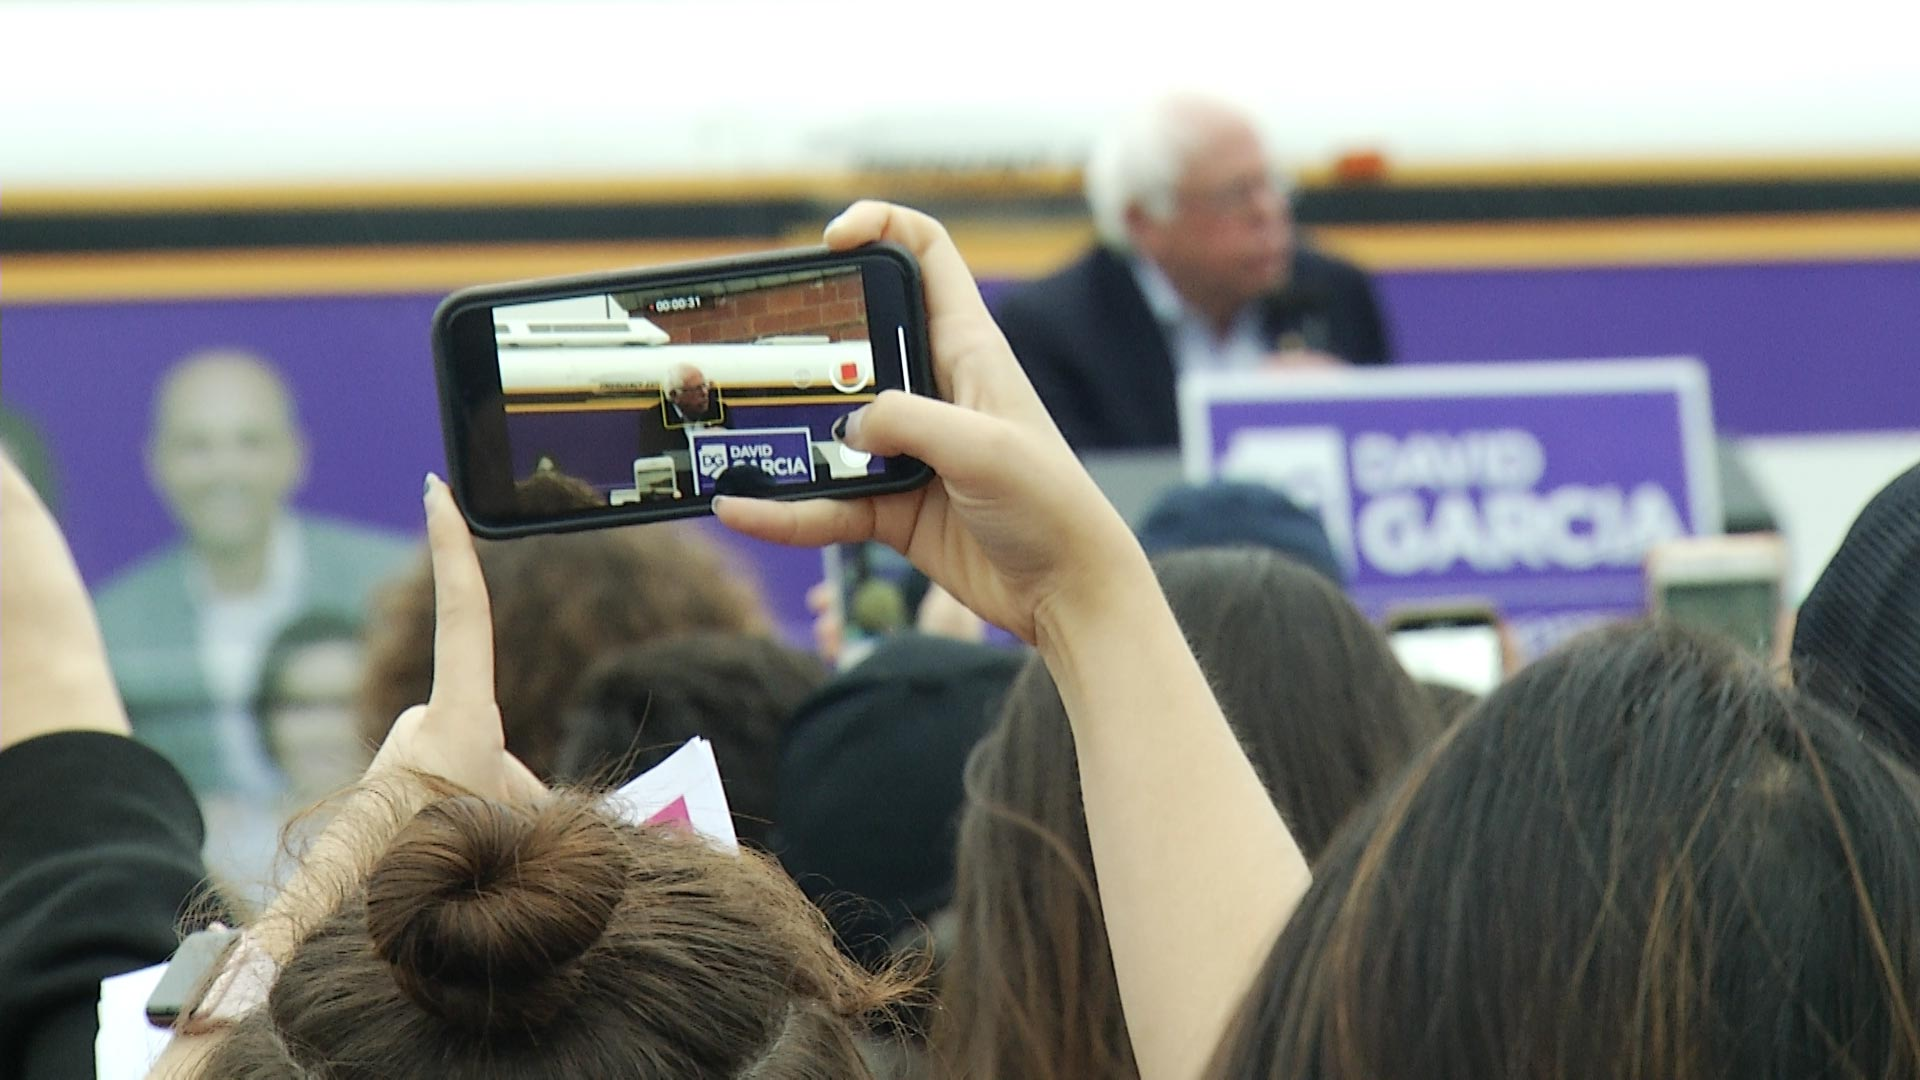 A spectator uses a smartphone to record Vermont Sen. Bernie Sanders at a political rally at the University of Arizona on Tuesday, October 23, 2018.